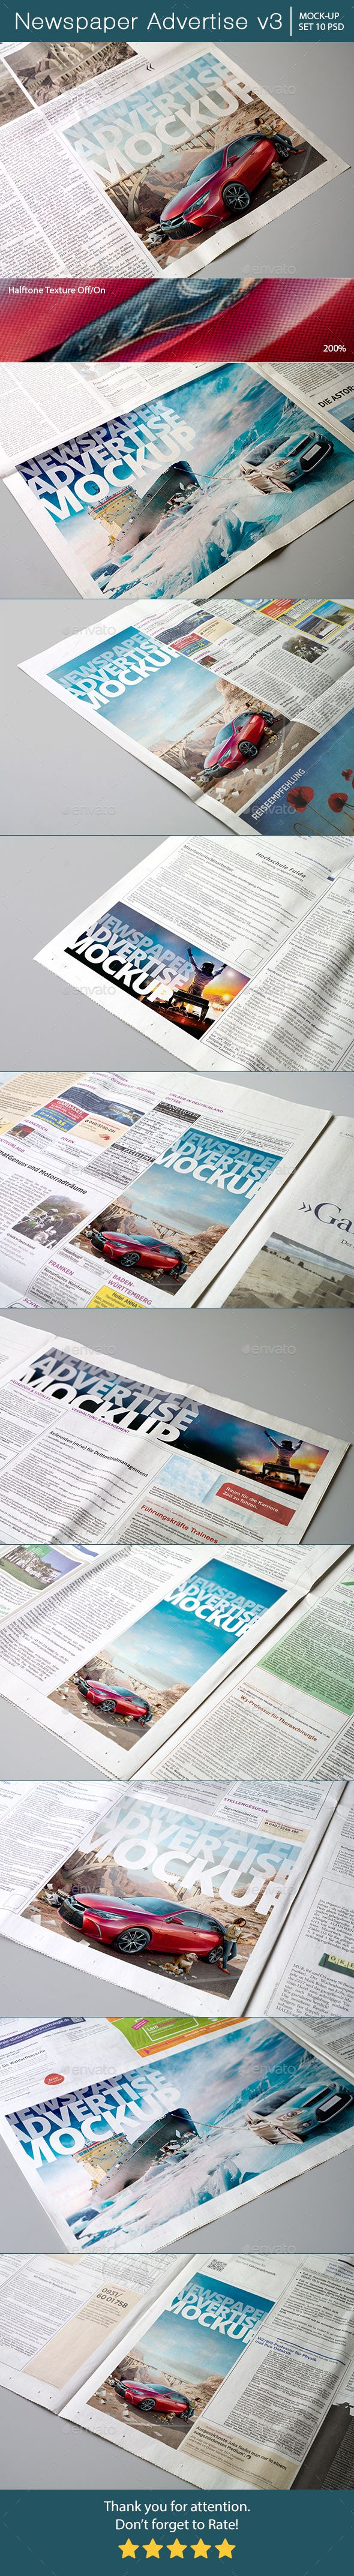 Newspaper Advertise Mockup #design Download: http://graphicriver.net/item/newspaper-advertise-mockup-v3/14288069?ref=ksioks